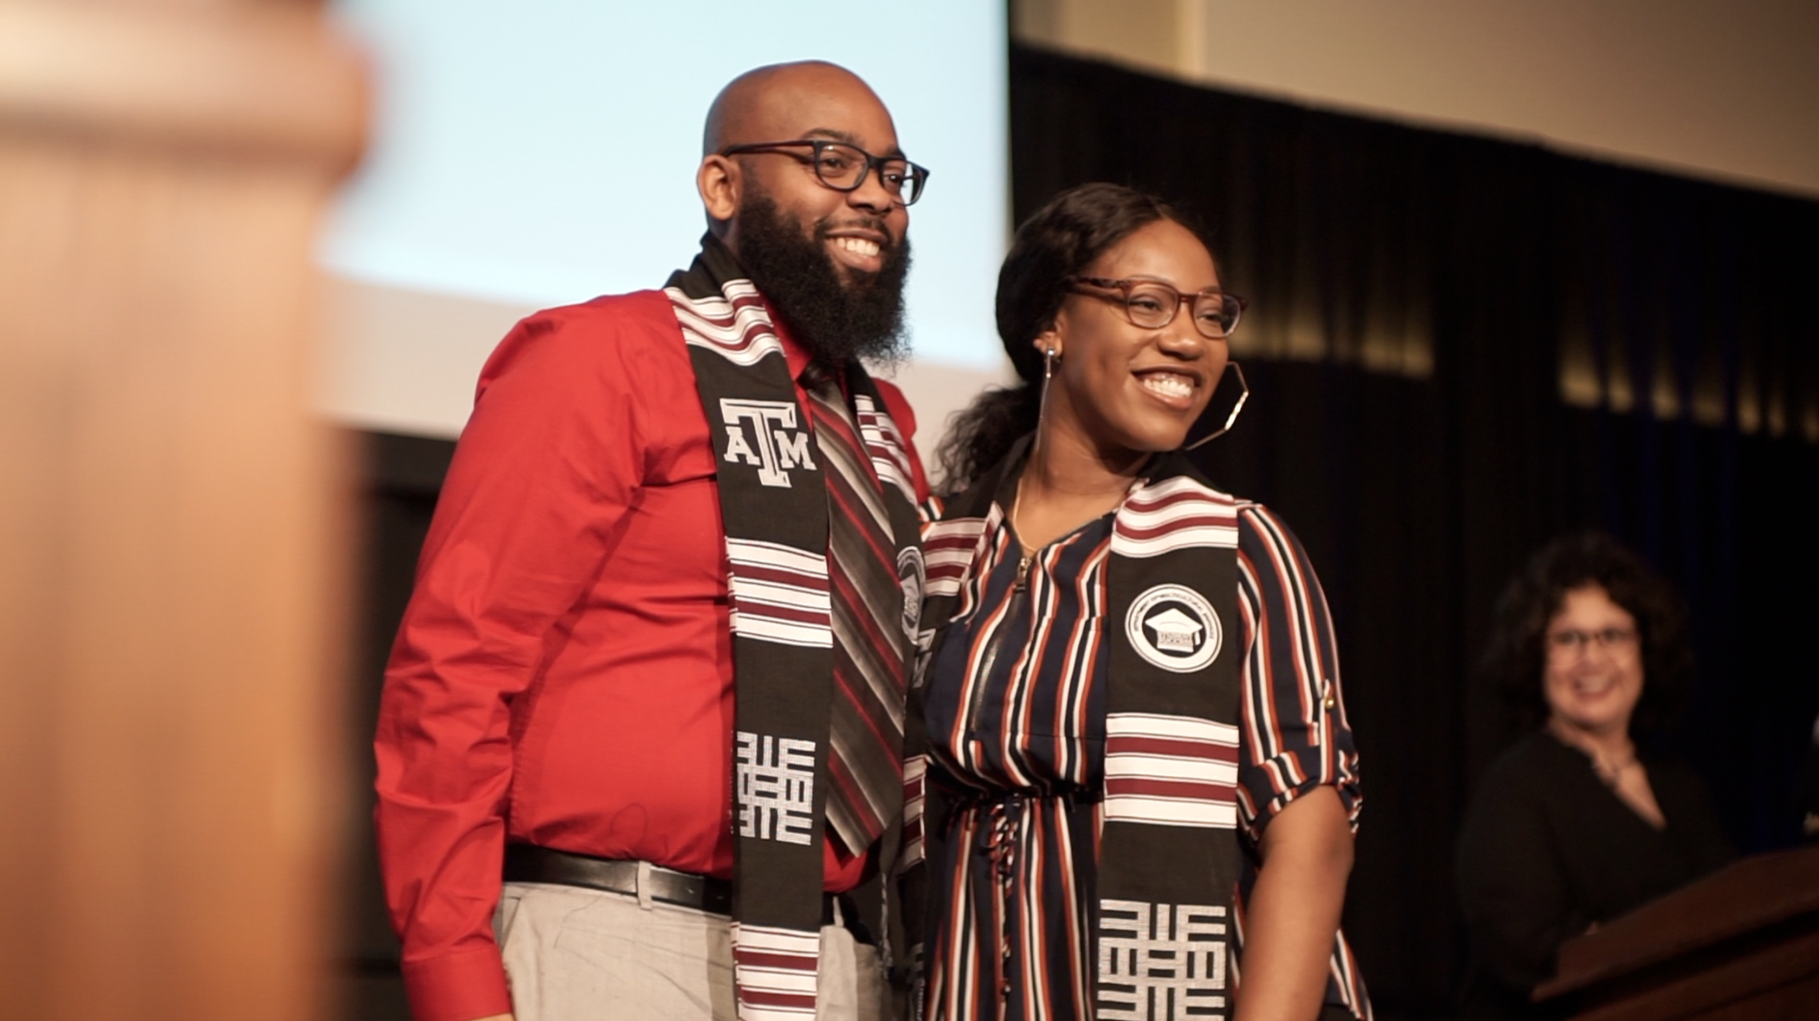 First Multicultural Graduation awards stoles to 125 students, celebrates diversity